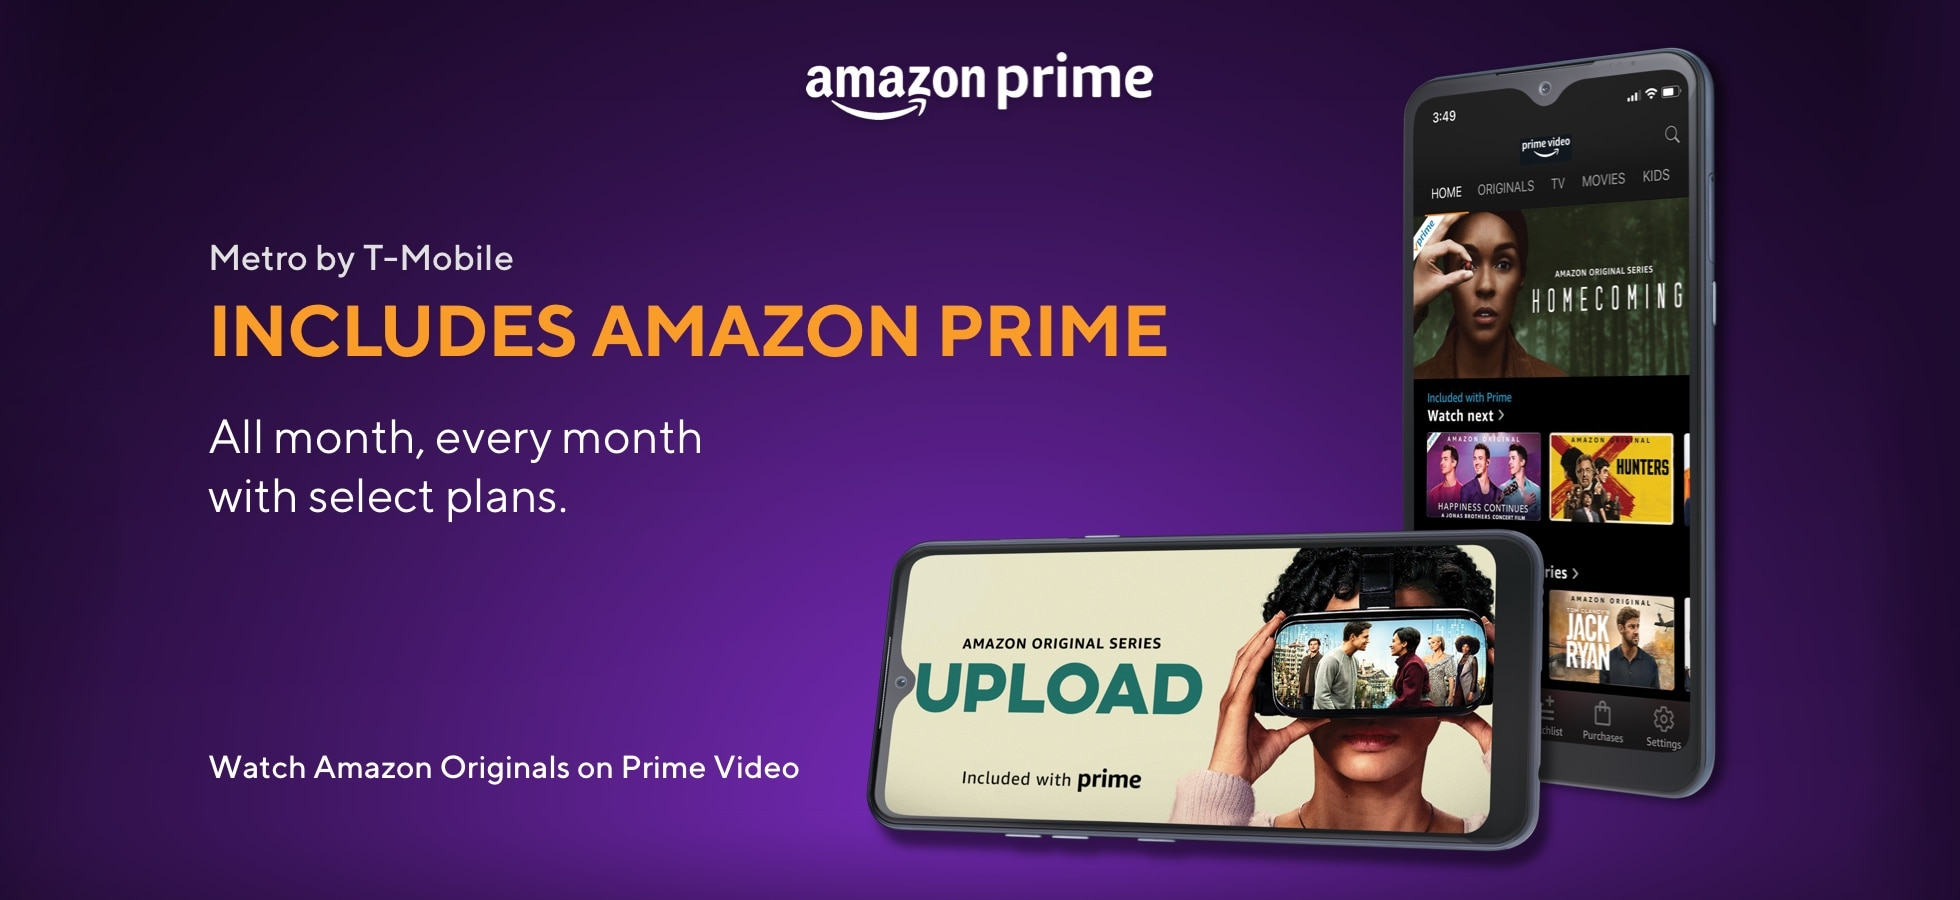 Amazon Prime. Now at Metro by T-Mobile includes Amazon Prime with your $60 plan.